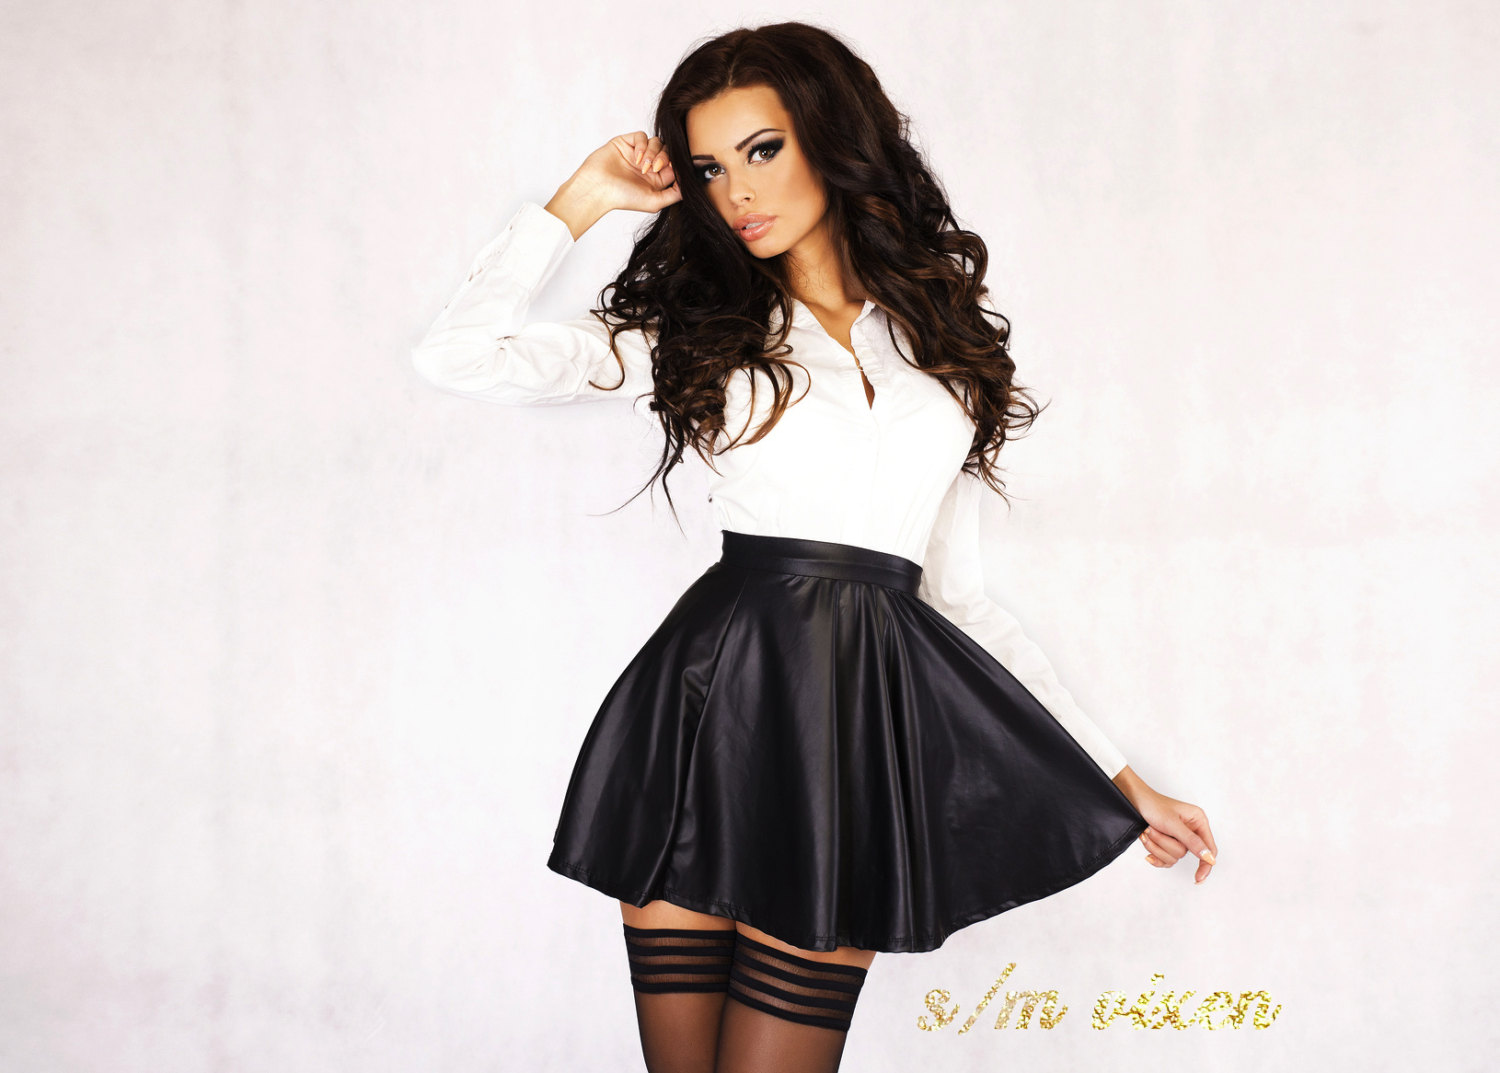 Black SKATER wet look faux leather skater skirt mini flare